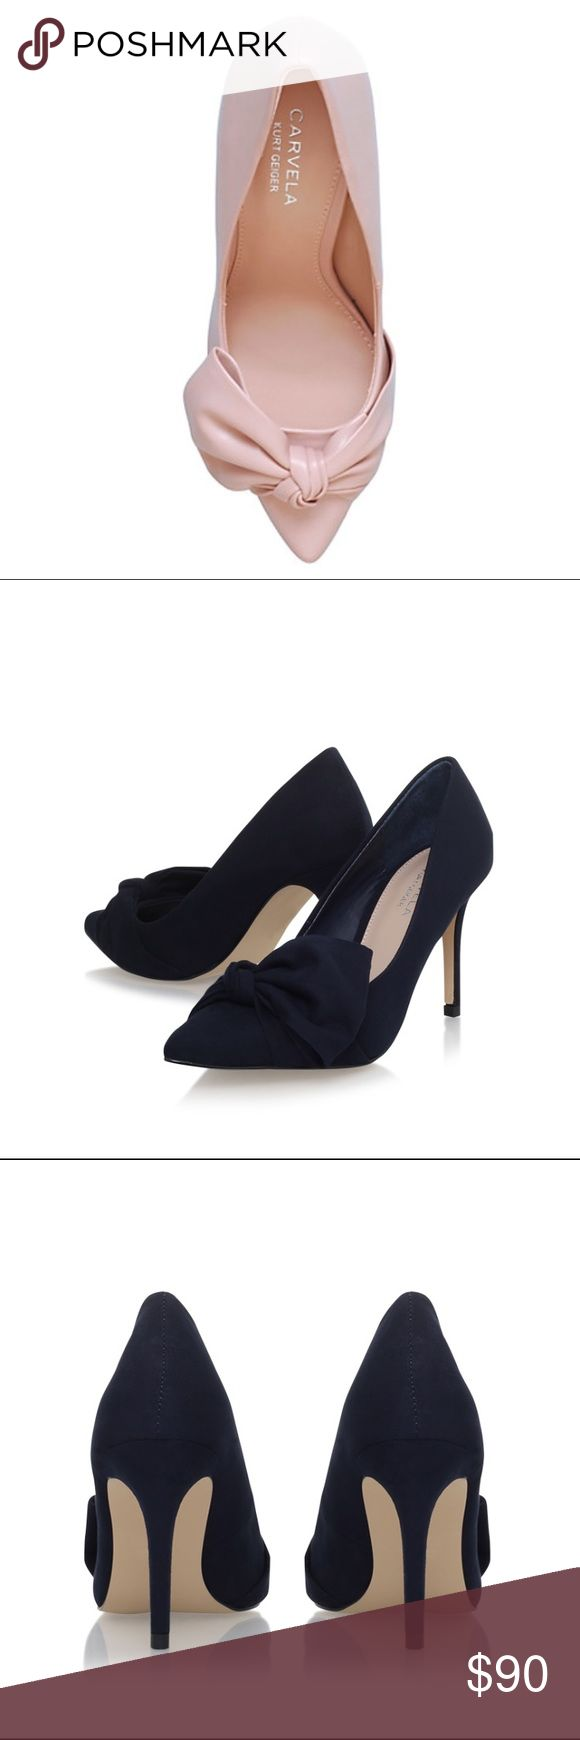 "Navy Carvela Kurt Geiger Pump Still in their box. Bought on the Kurt Geiger website but they are too small for me. The material is suede and the heel height is 8.5cm ( 3.35"") Carvela Kurt Geiger  Shoes Heels"